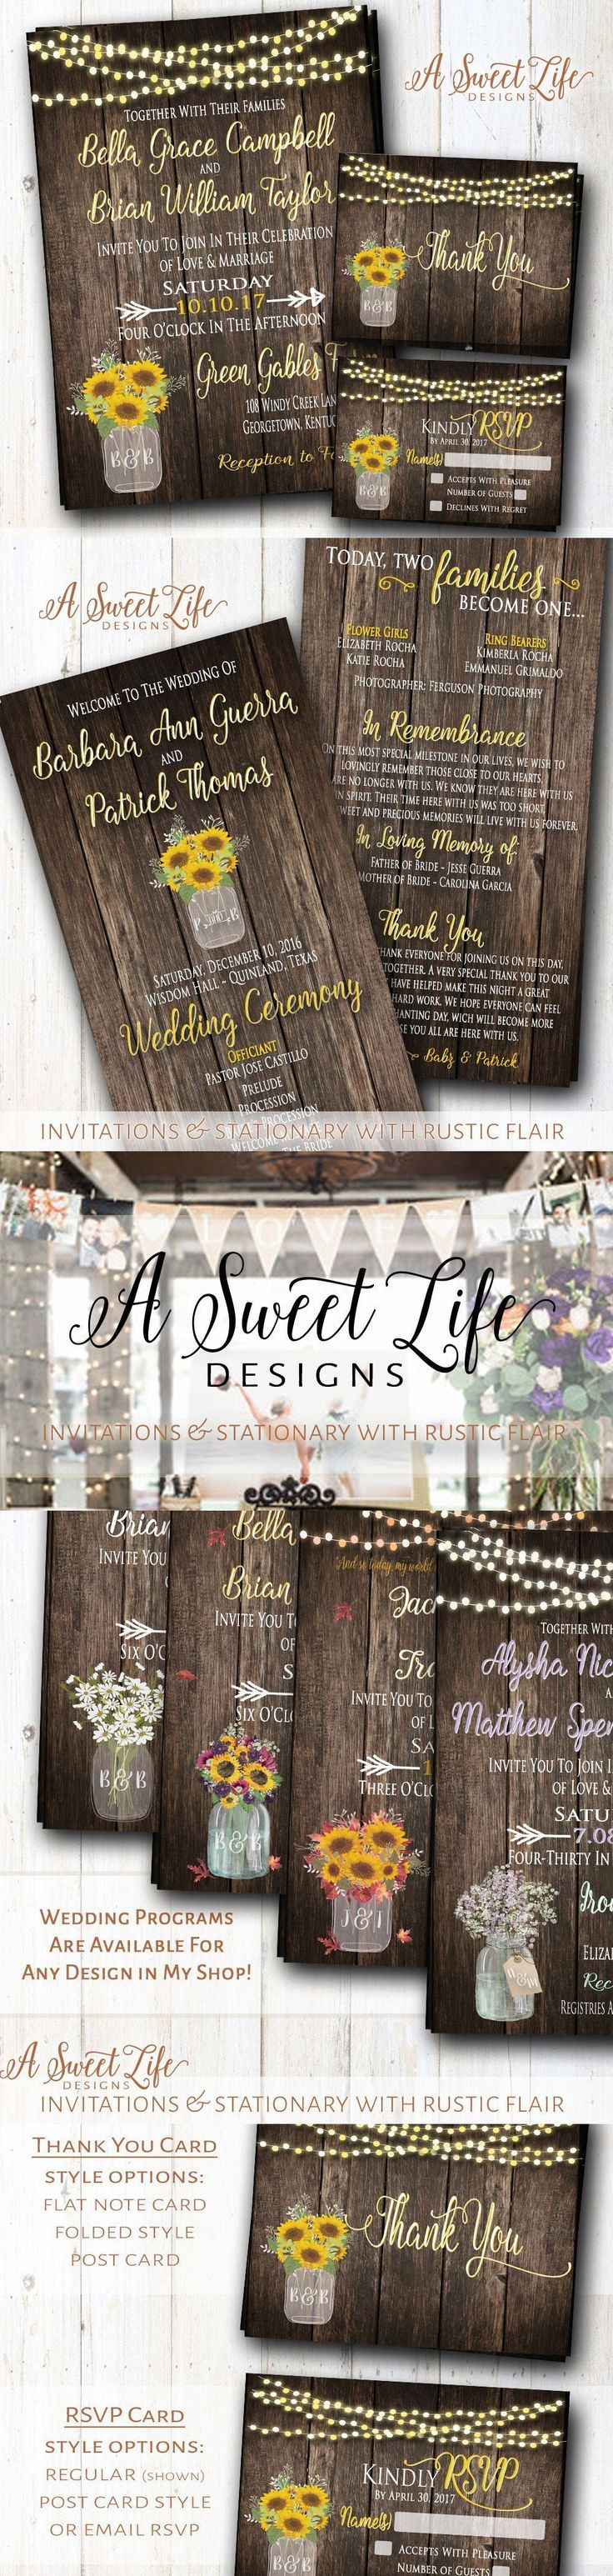 we would like to invite you celebrate our wedding in december0th%0A This beautiful sunflower themed invitation design package will set a warm  and inviting tone for your rustic wedding  It u    s the perfect invite for a  rustic